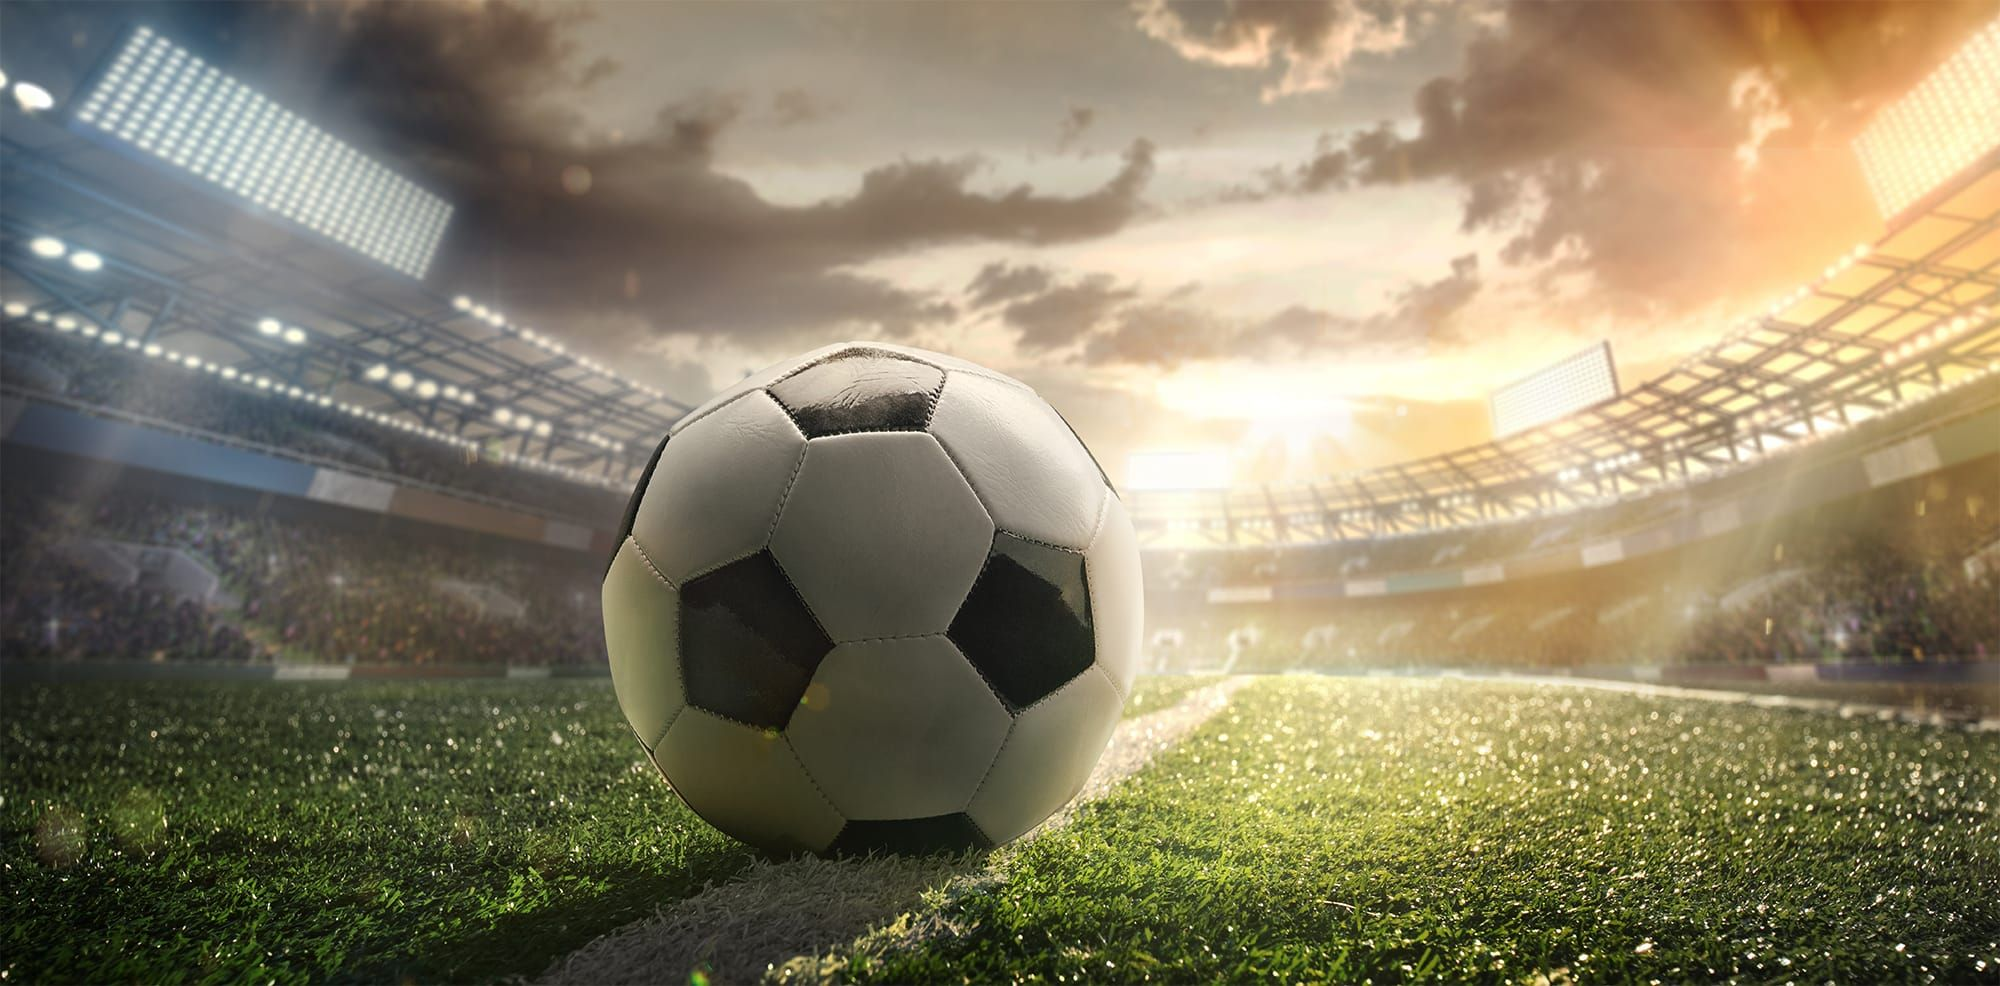 Match preview world cup betting online what to know about sports betting